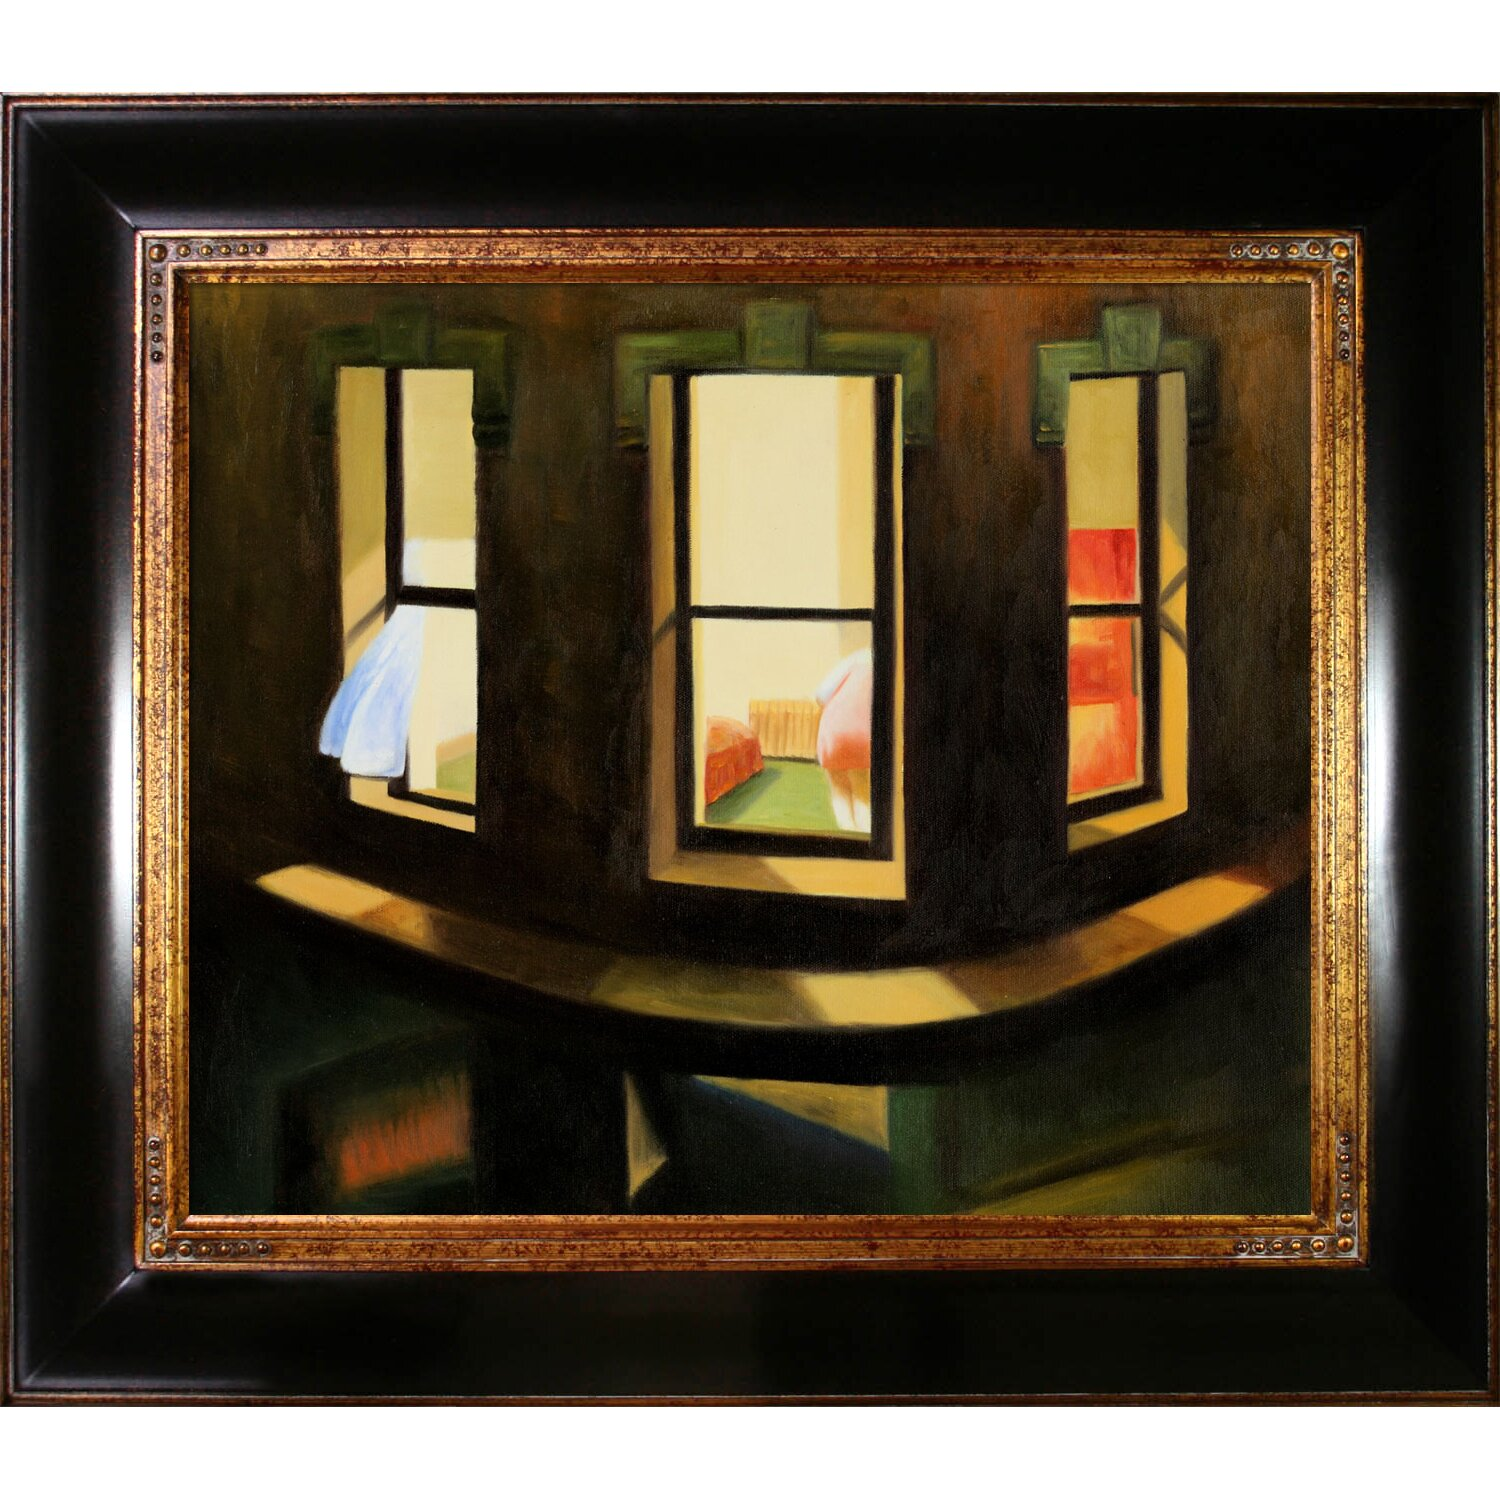 Tori Home Night Windows By Edward Hopper Framed Painting